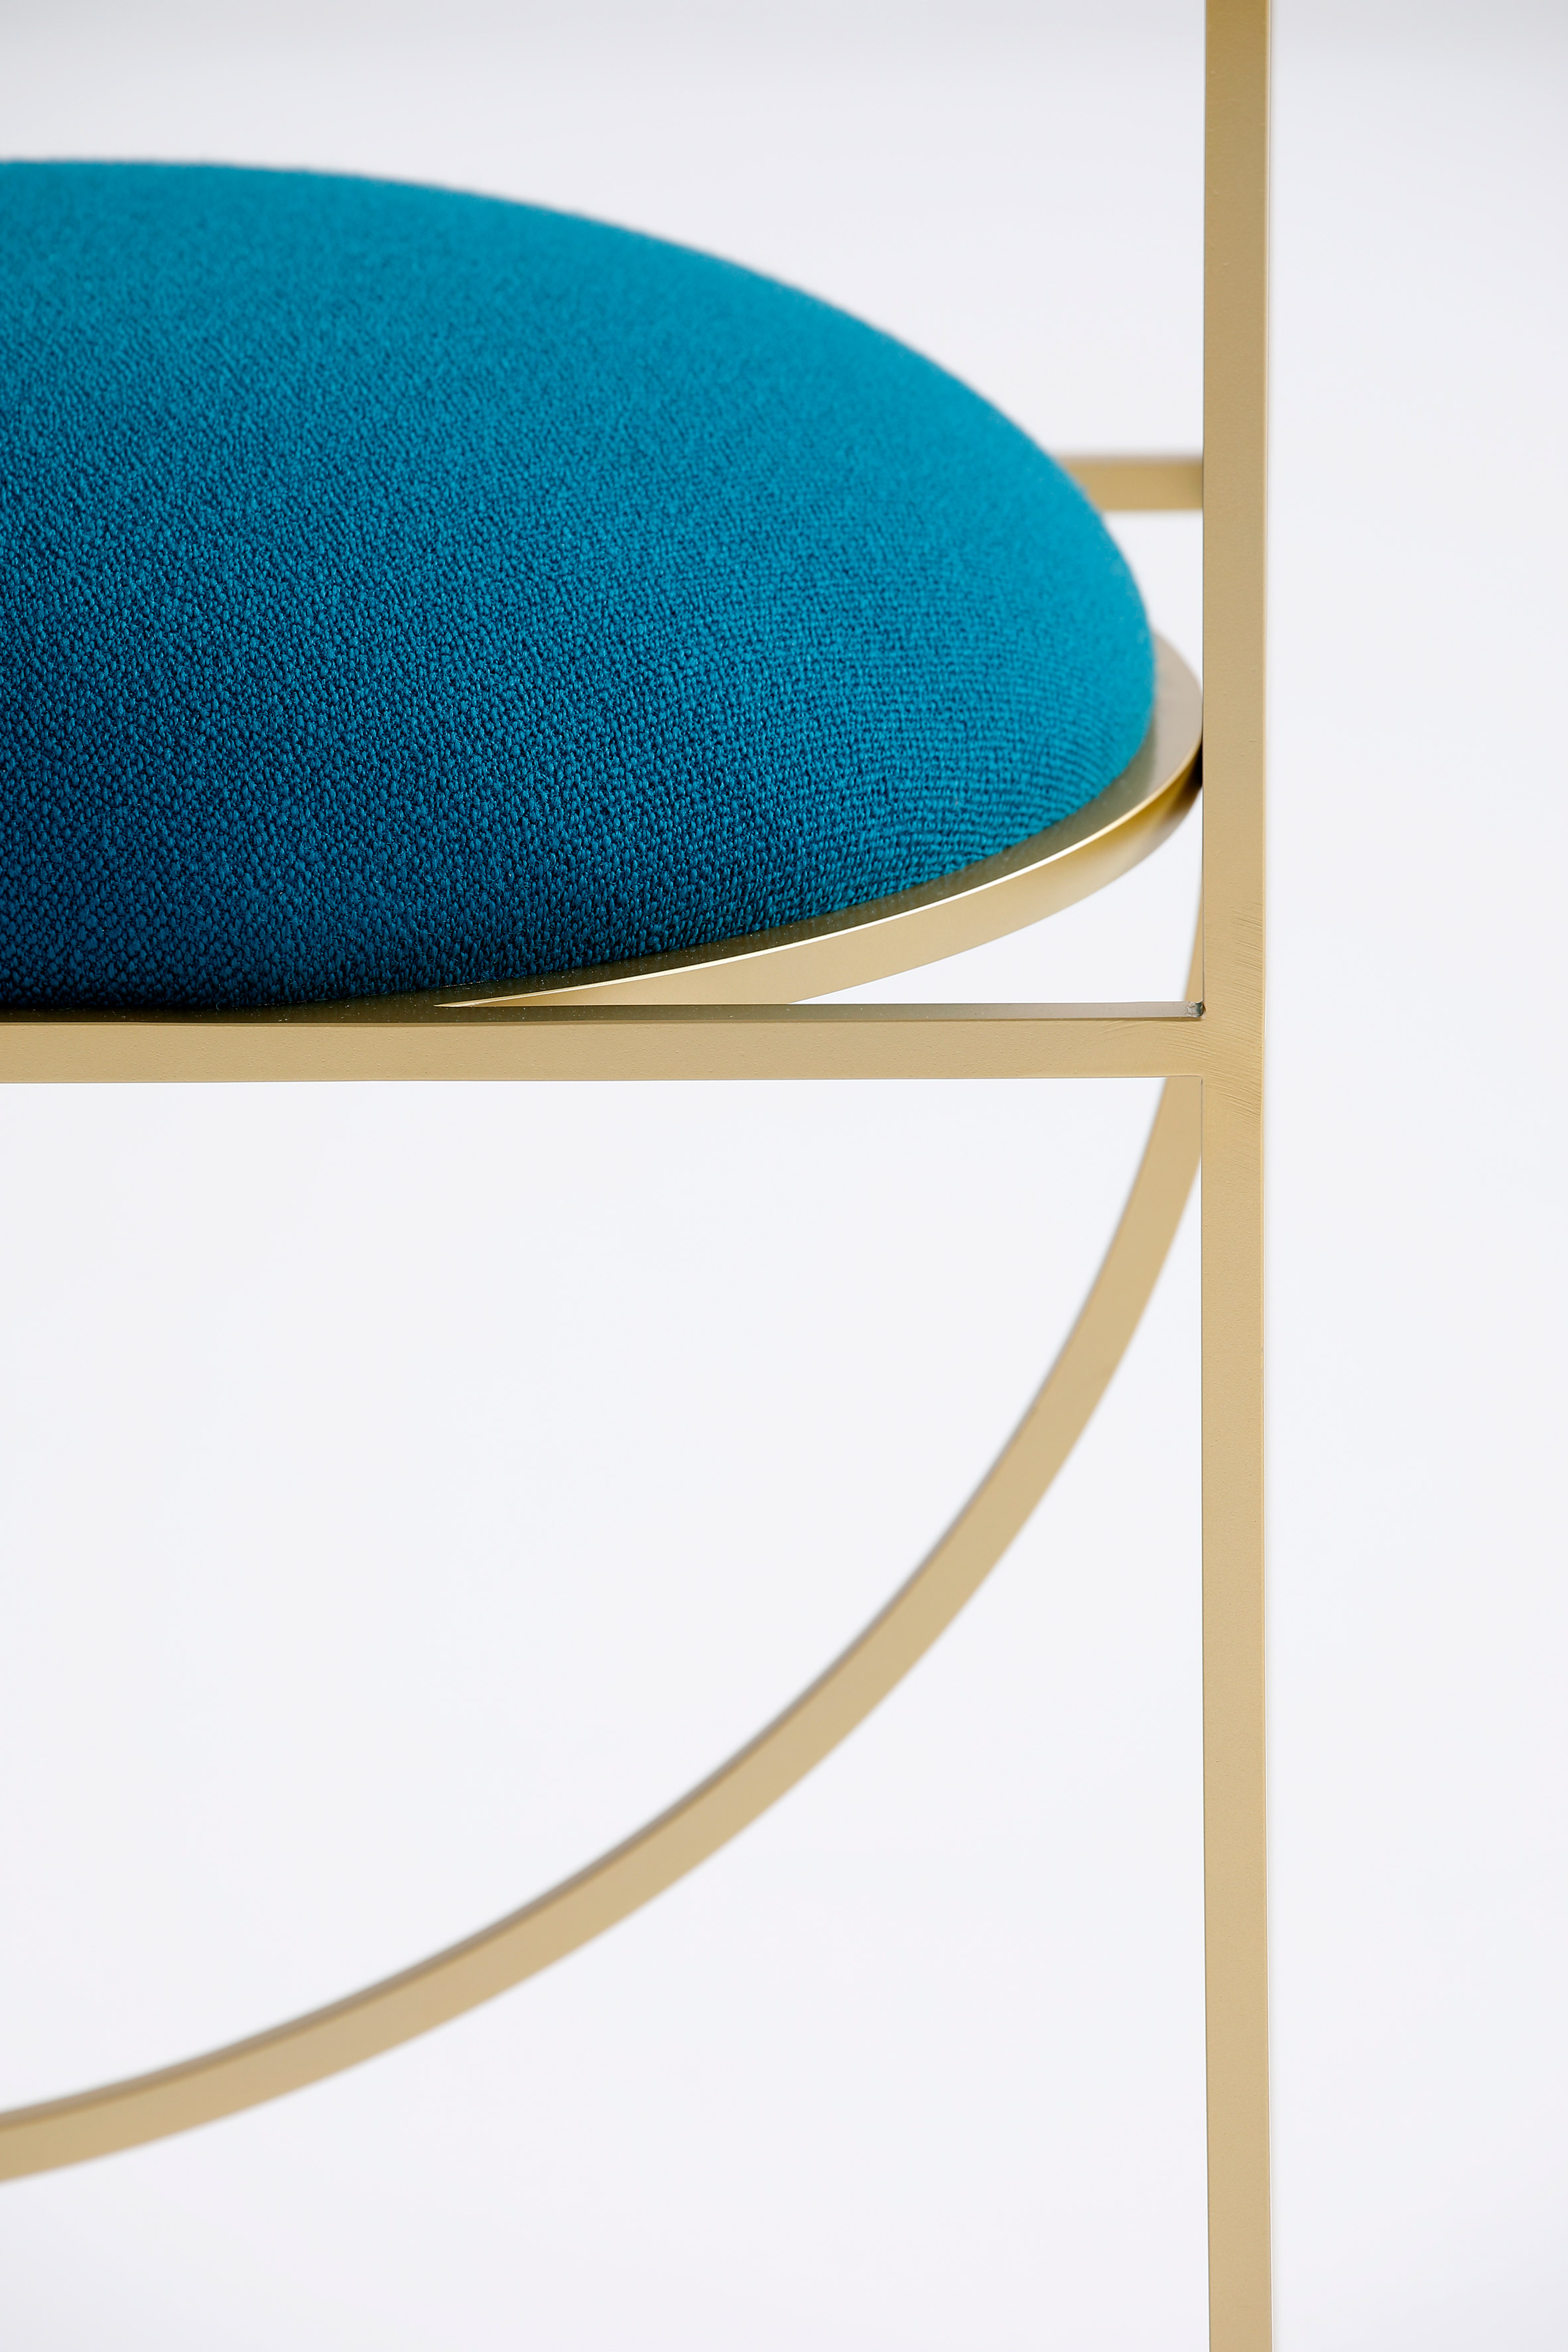 Lara Bohinc takes cues from celestial forms for first seating collection插图3